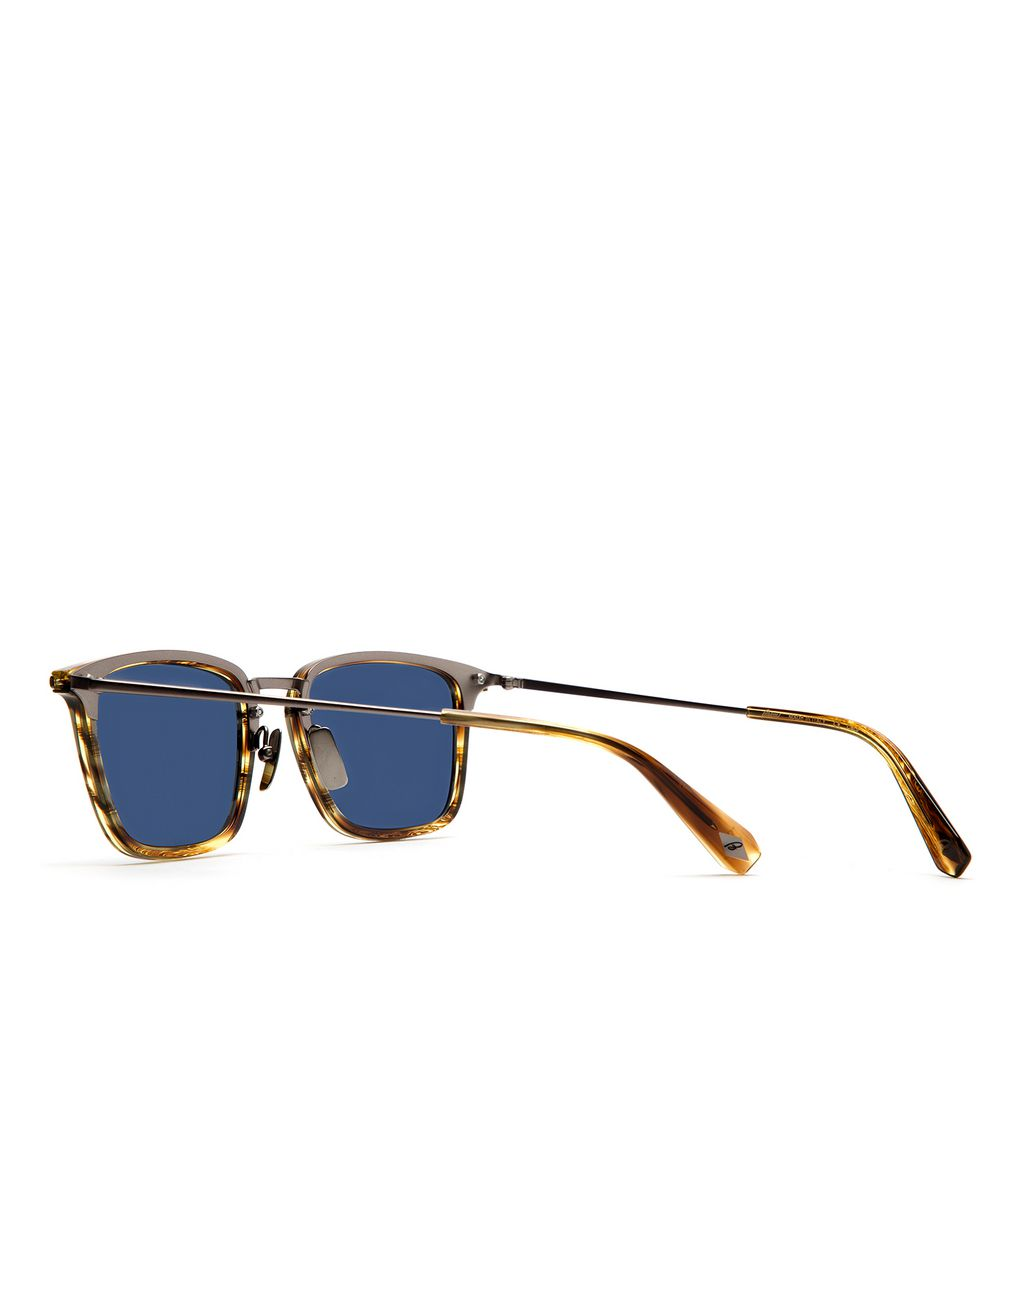 BRIONI Shiny Brown Havana Squared Sunglasses with Blue Lenses Sunglasses Man d